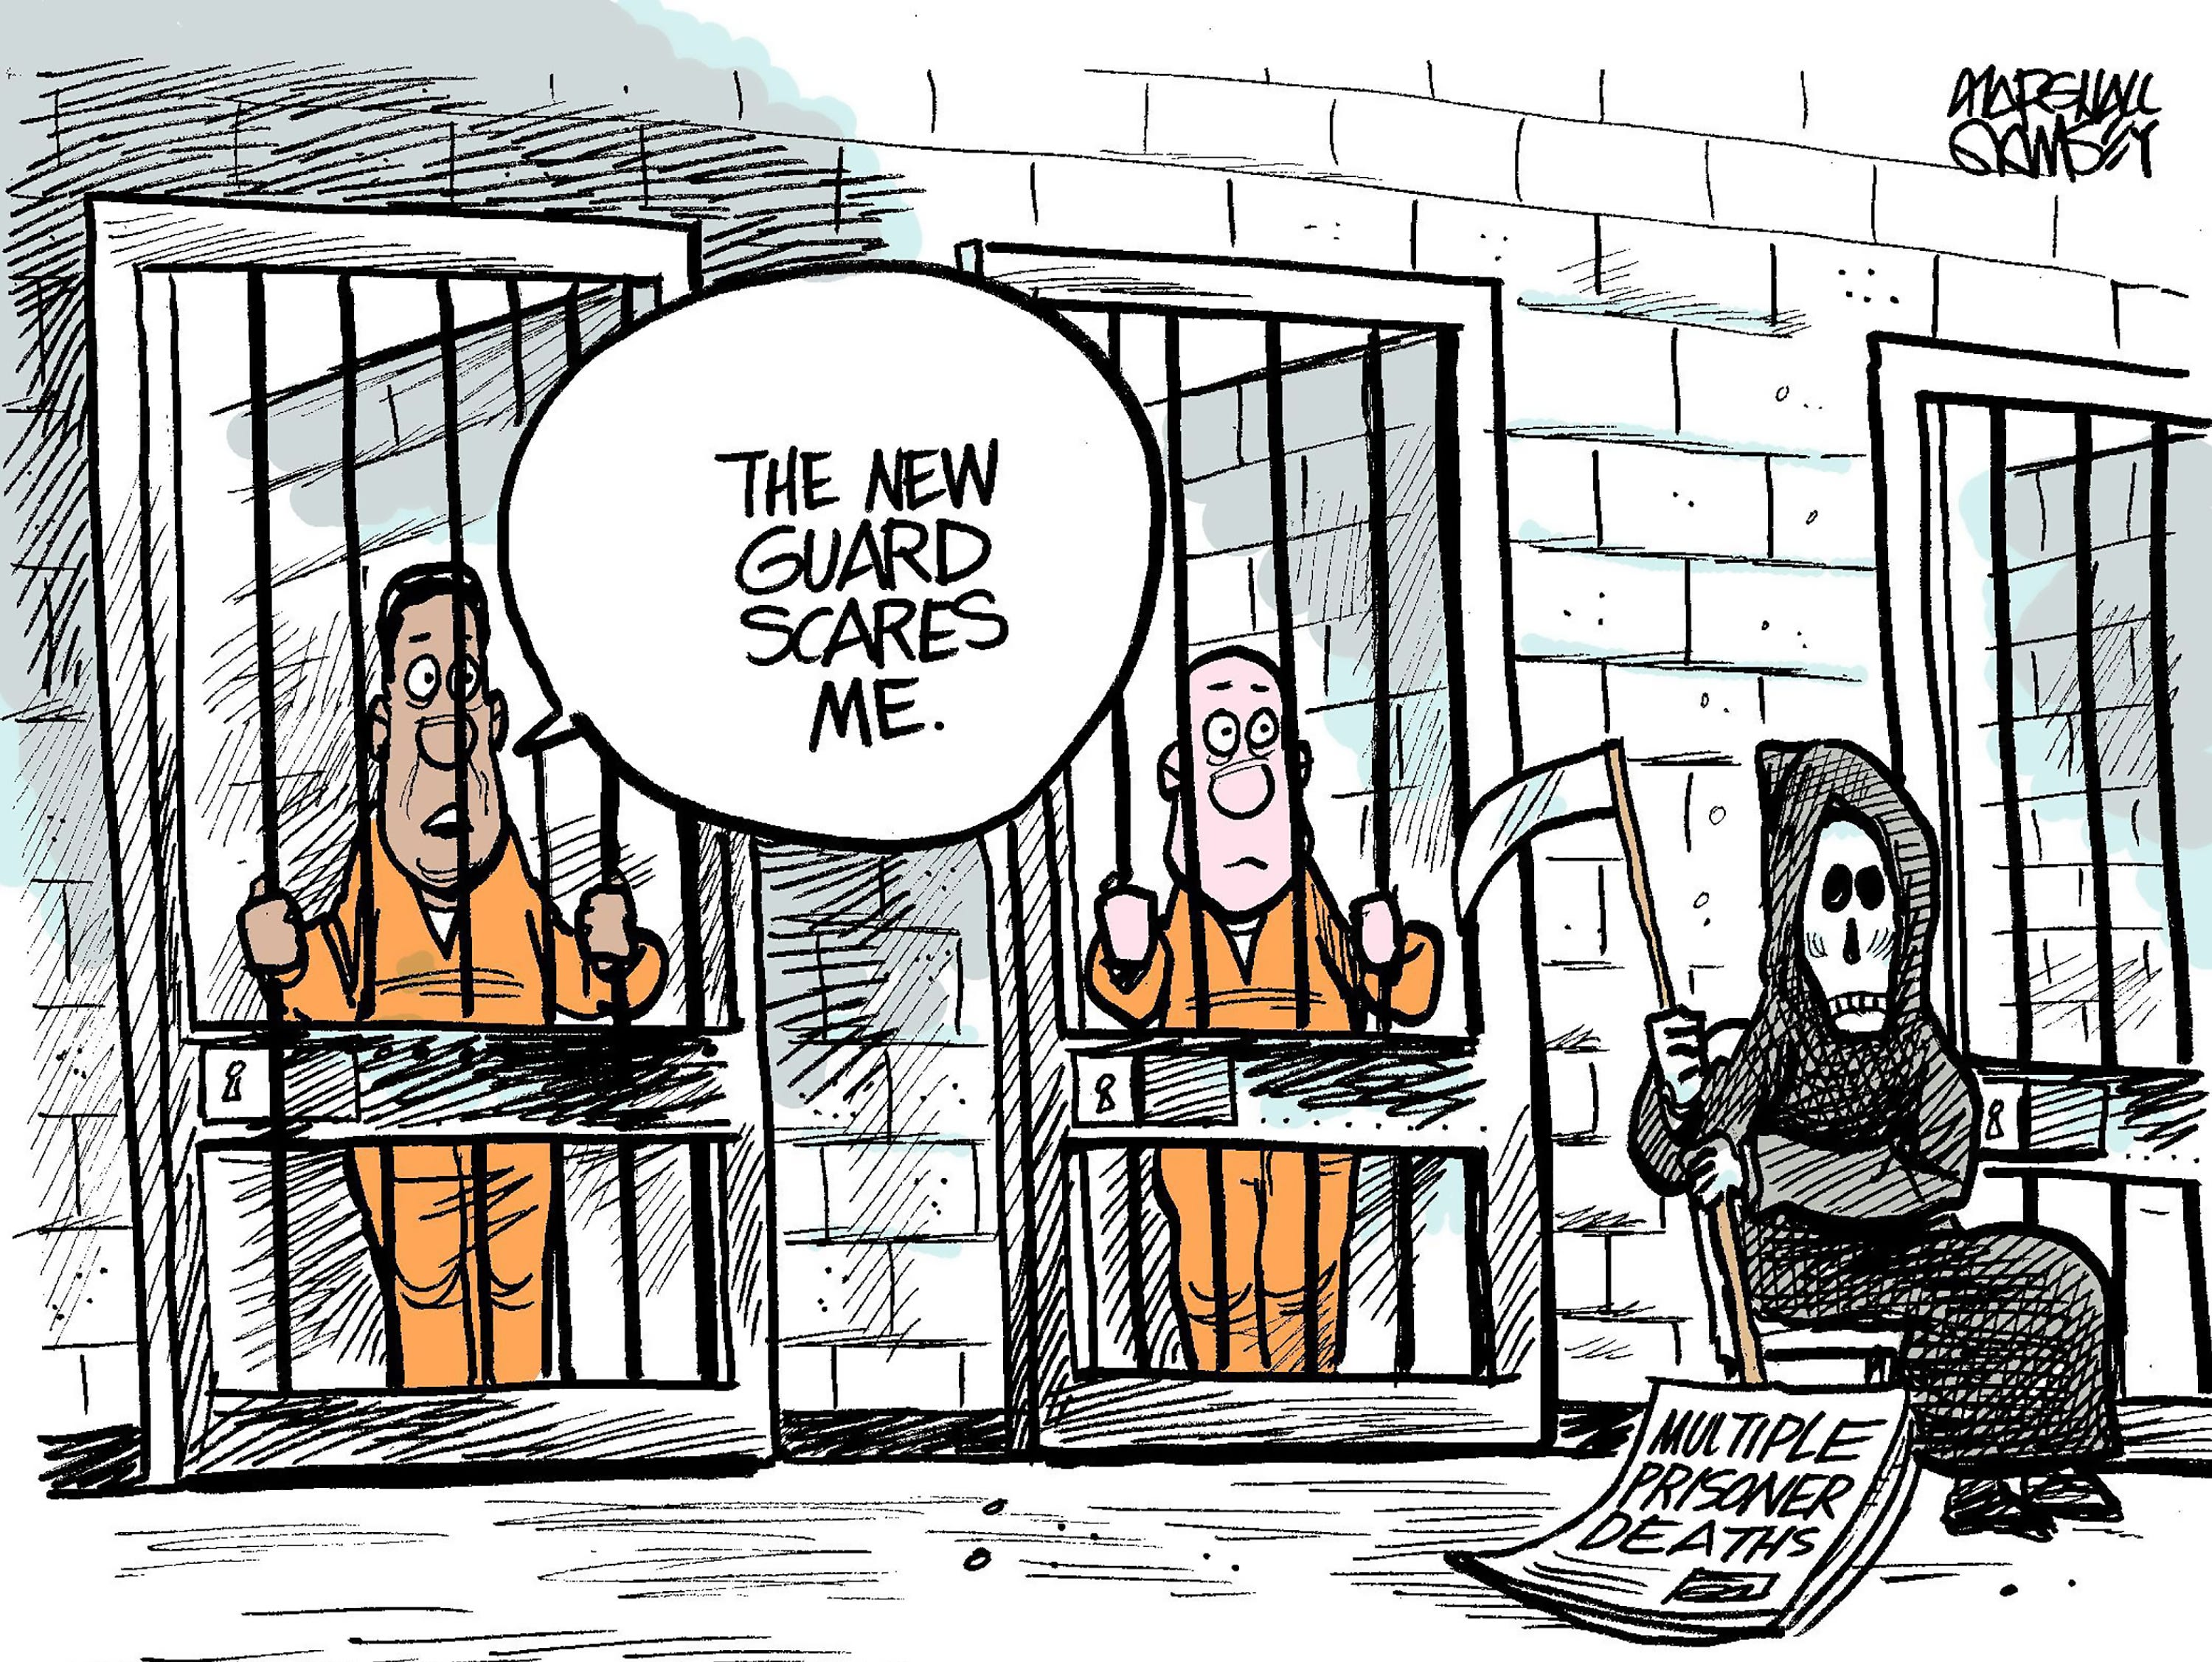 Mississippi has had at least 10 deaths in its prisons so far in August. The cartoonist's homepage, clarionledger.com/opinion